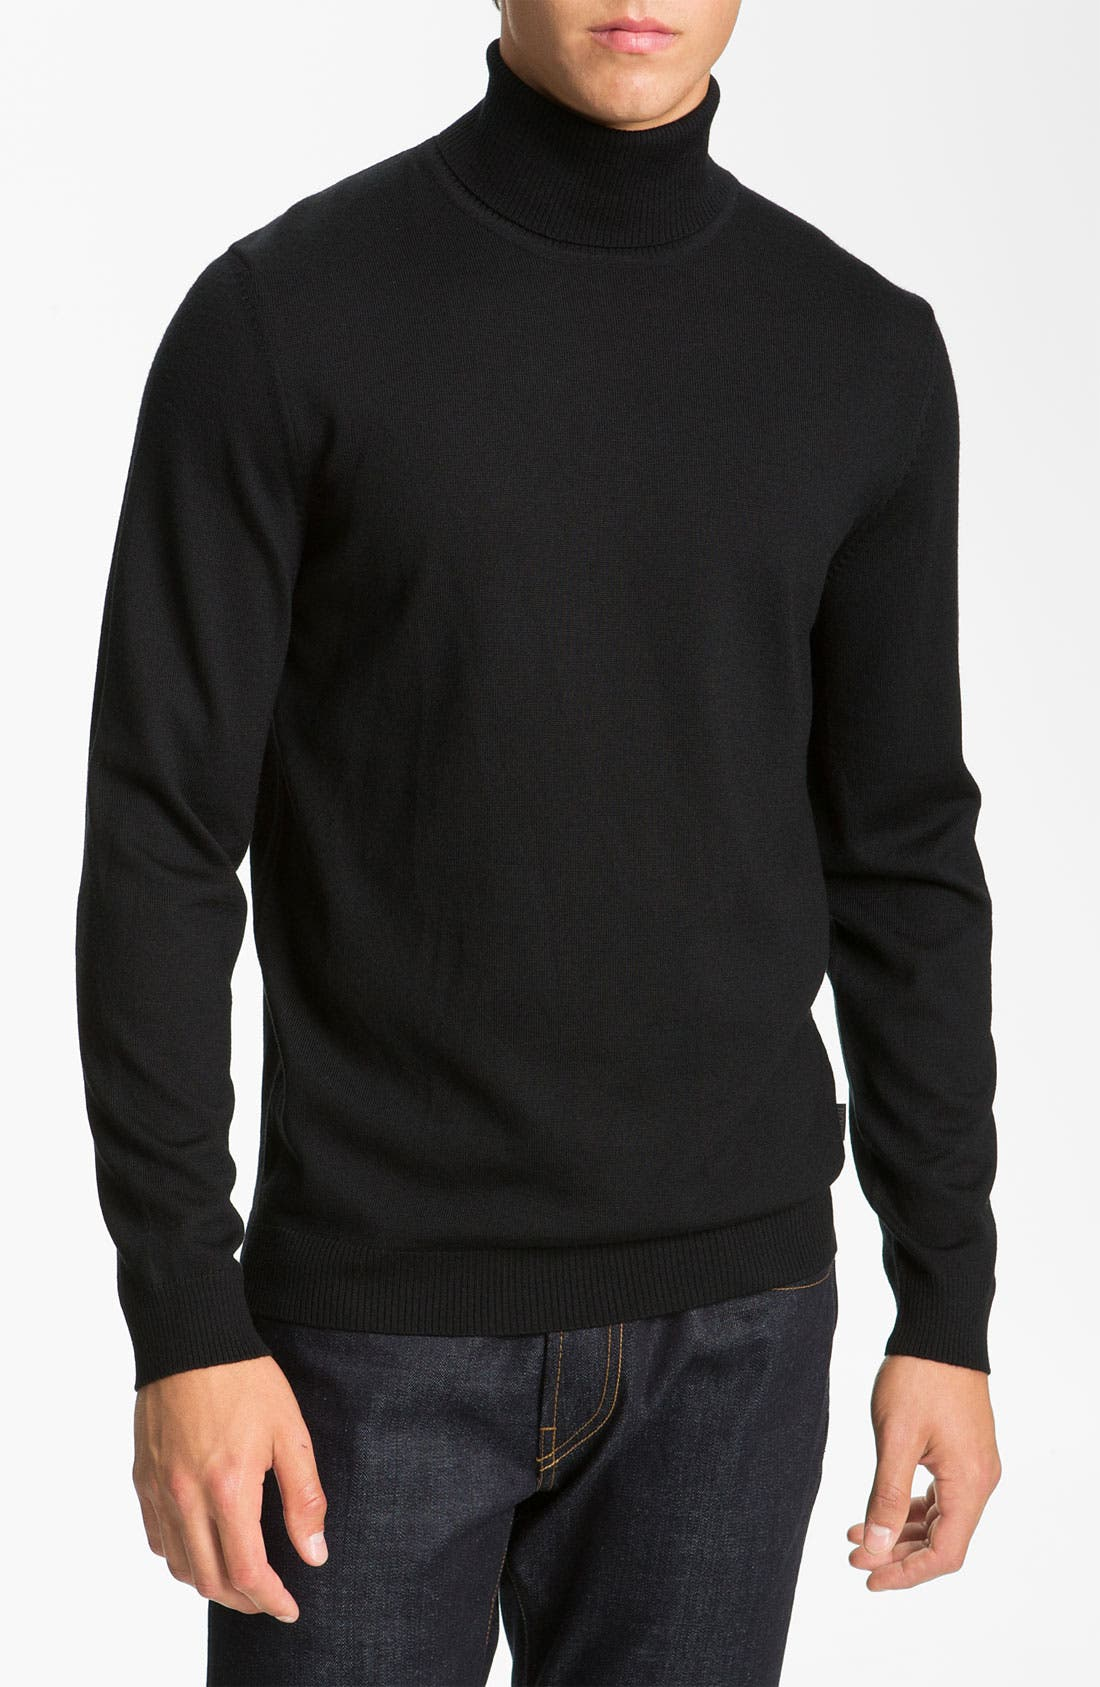 Alternate Image 1 Selected - BOSS Black Slim Fit Wool Turtleneck